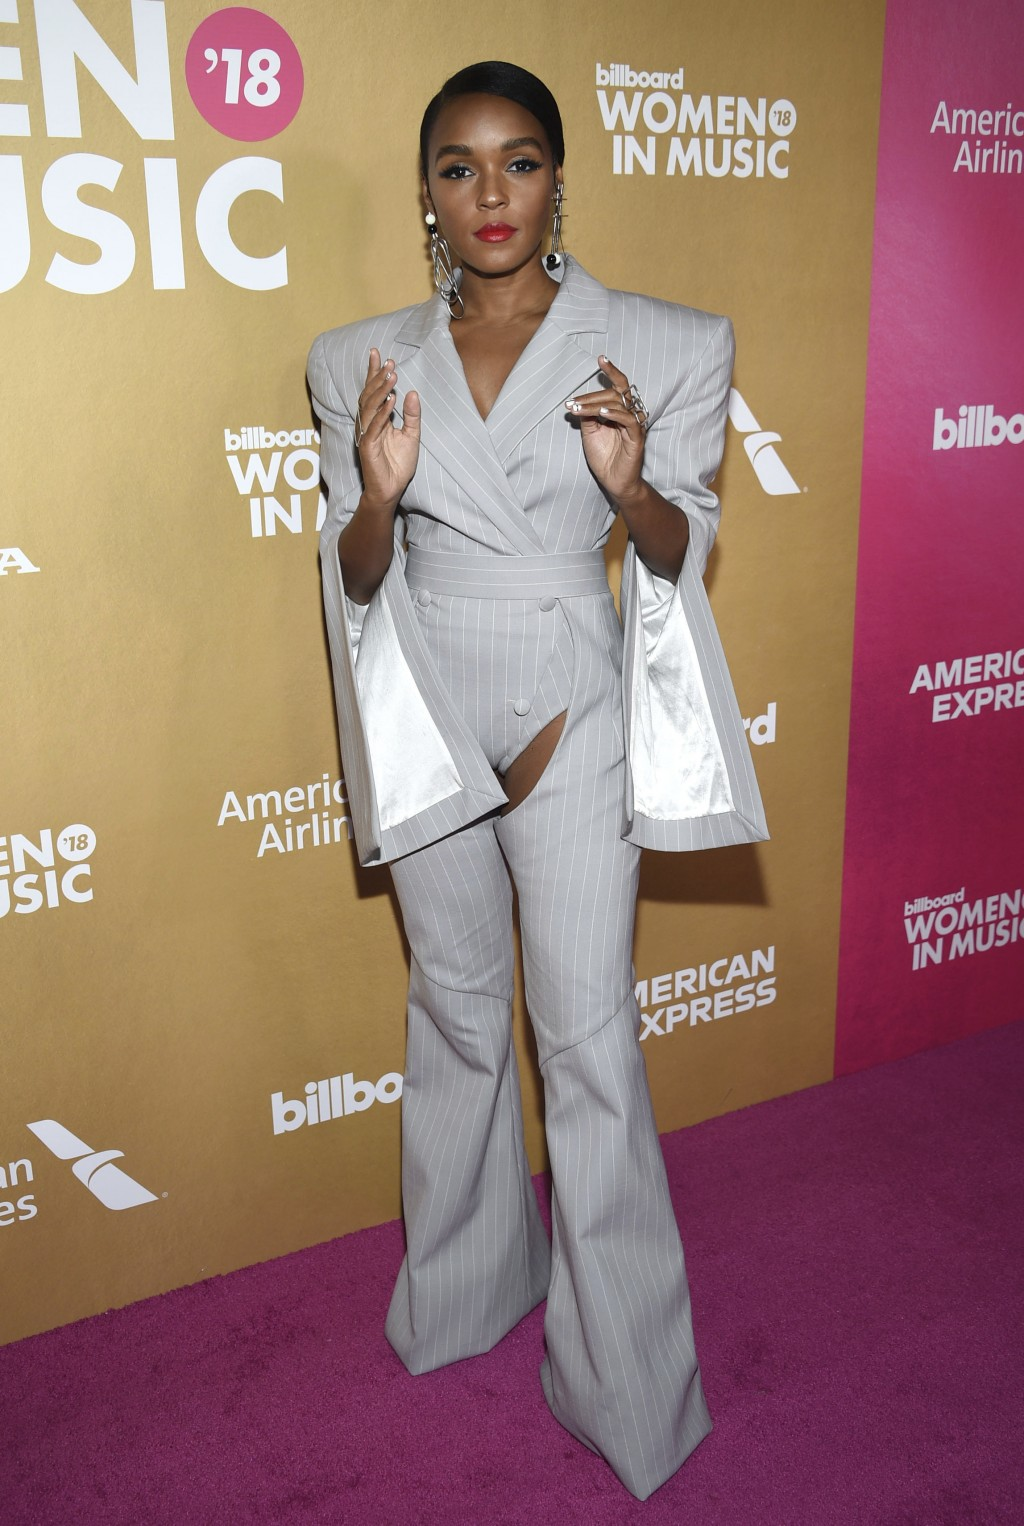 Janelle Monae attends the 13th annual Billboard Women in Music event at Pier 36 on Thursday, Dec. 6, 2018, in New York. (Photo by Evan Agostini/Invisi